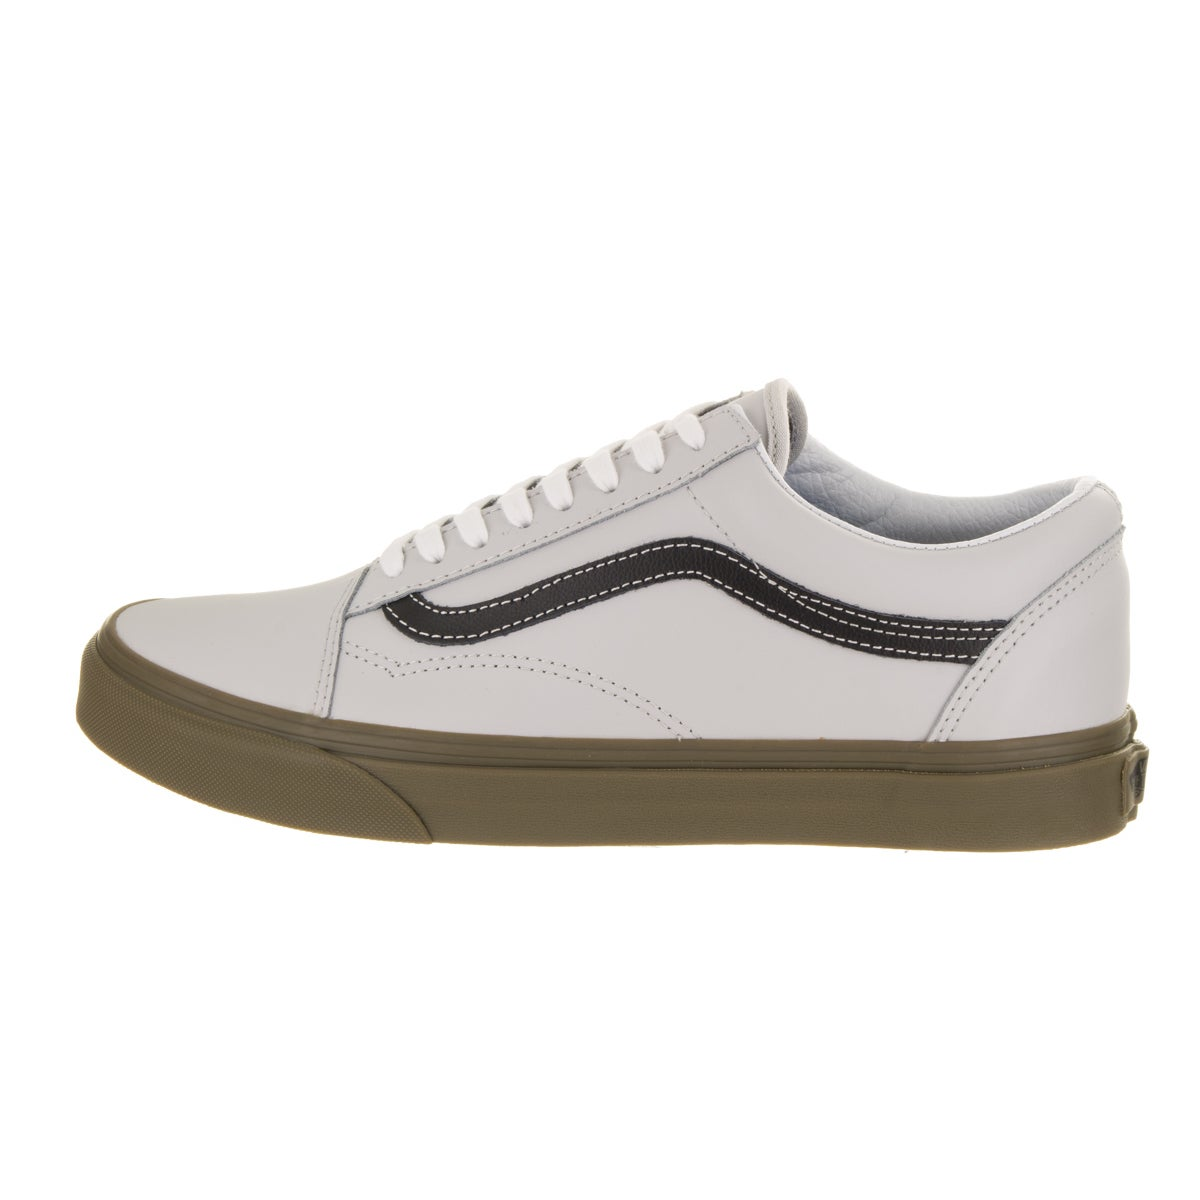 dbc6deb88a Shop Vans Unisex Old Skool (Bleacher) Skate Shoe - Free Shipping Today -  Overstock - 16939930